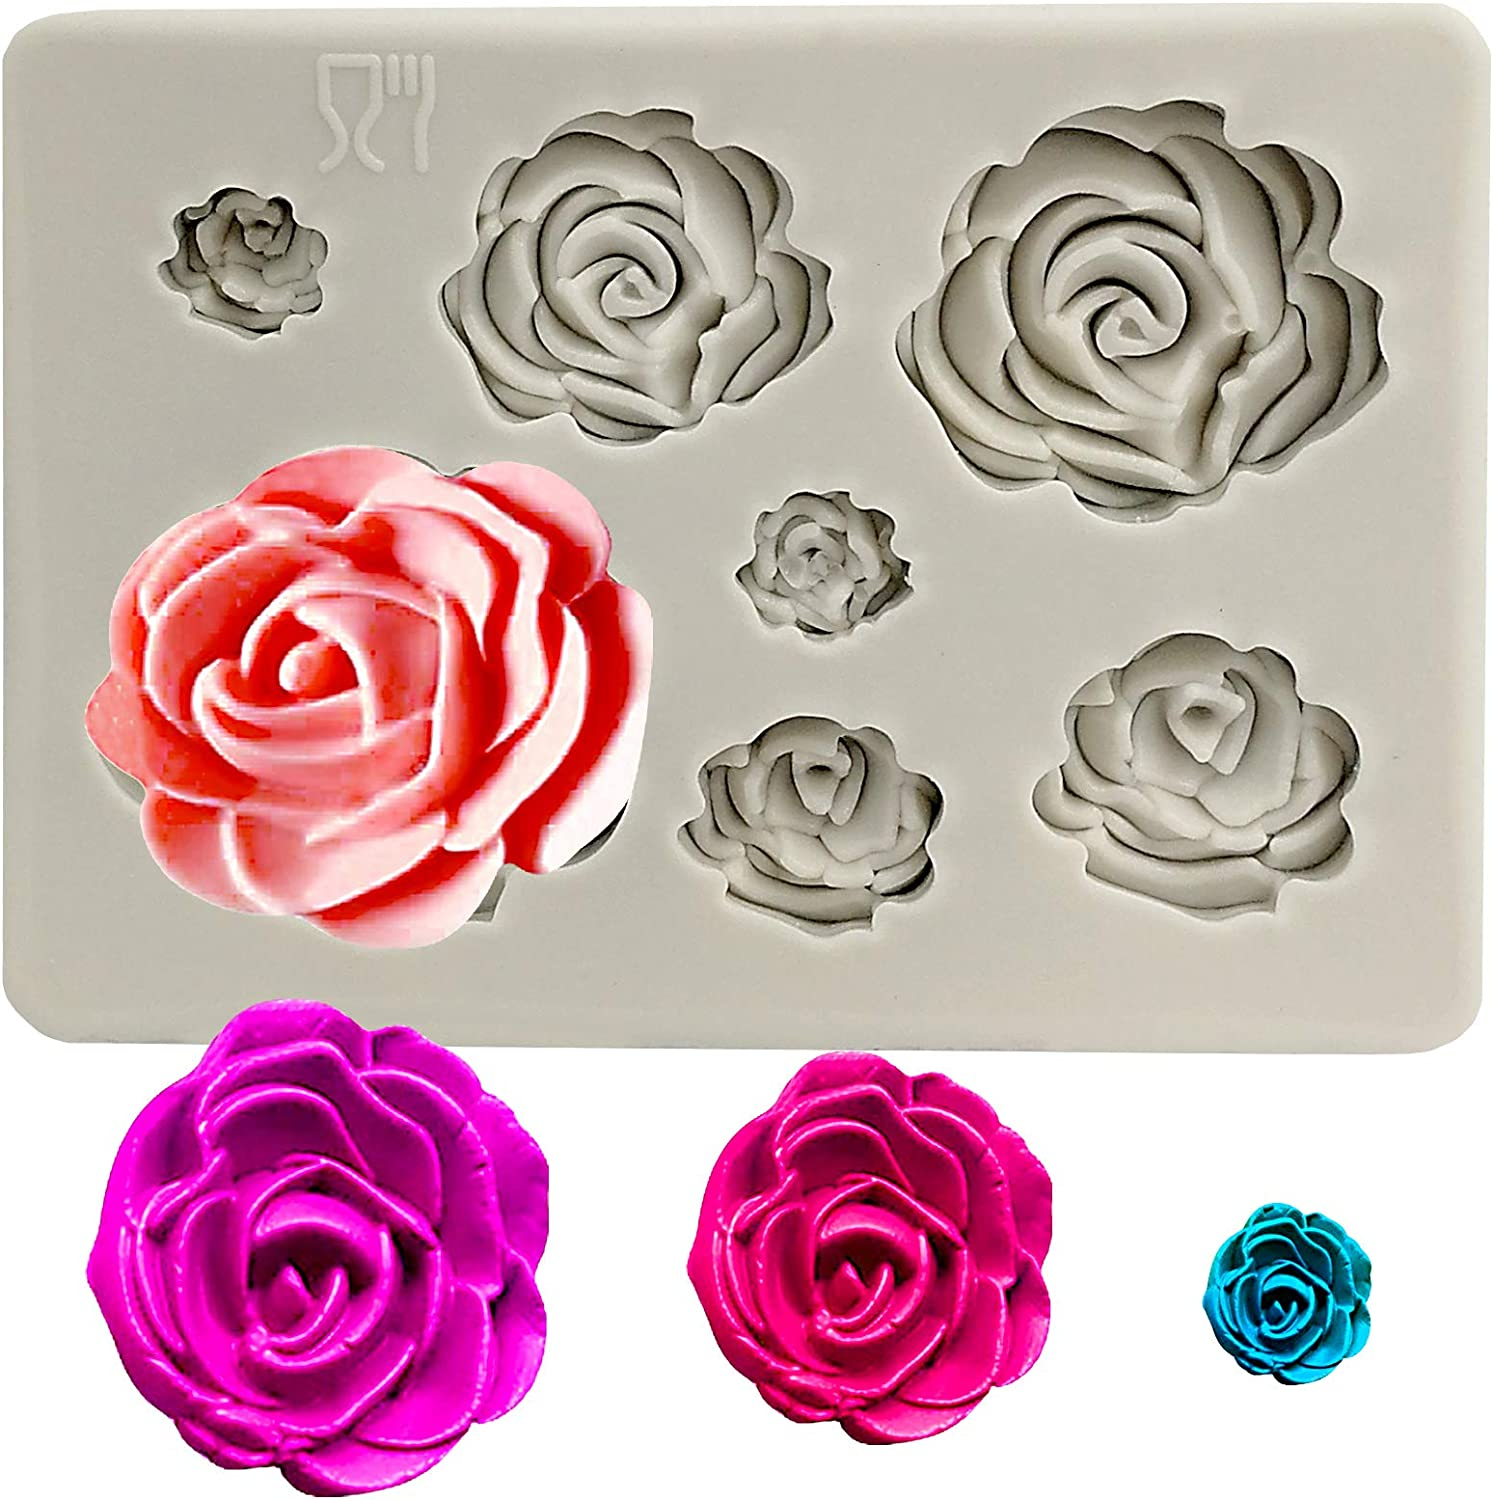 Soap Polymer Clay,Crafting Projects,Wedding and Birthday Cake Decoration Roses Flowers Collection Fondant Candy Silicone Mold for Sugarcraft Cupcake Toppers